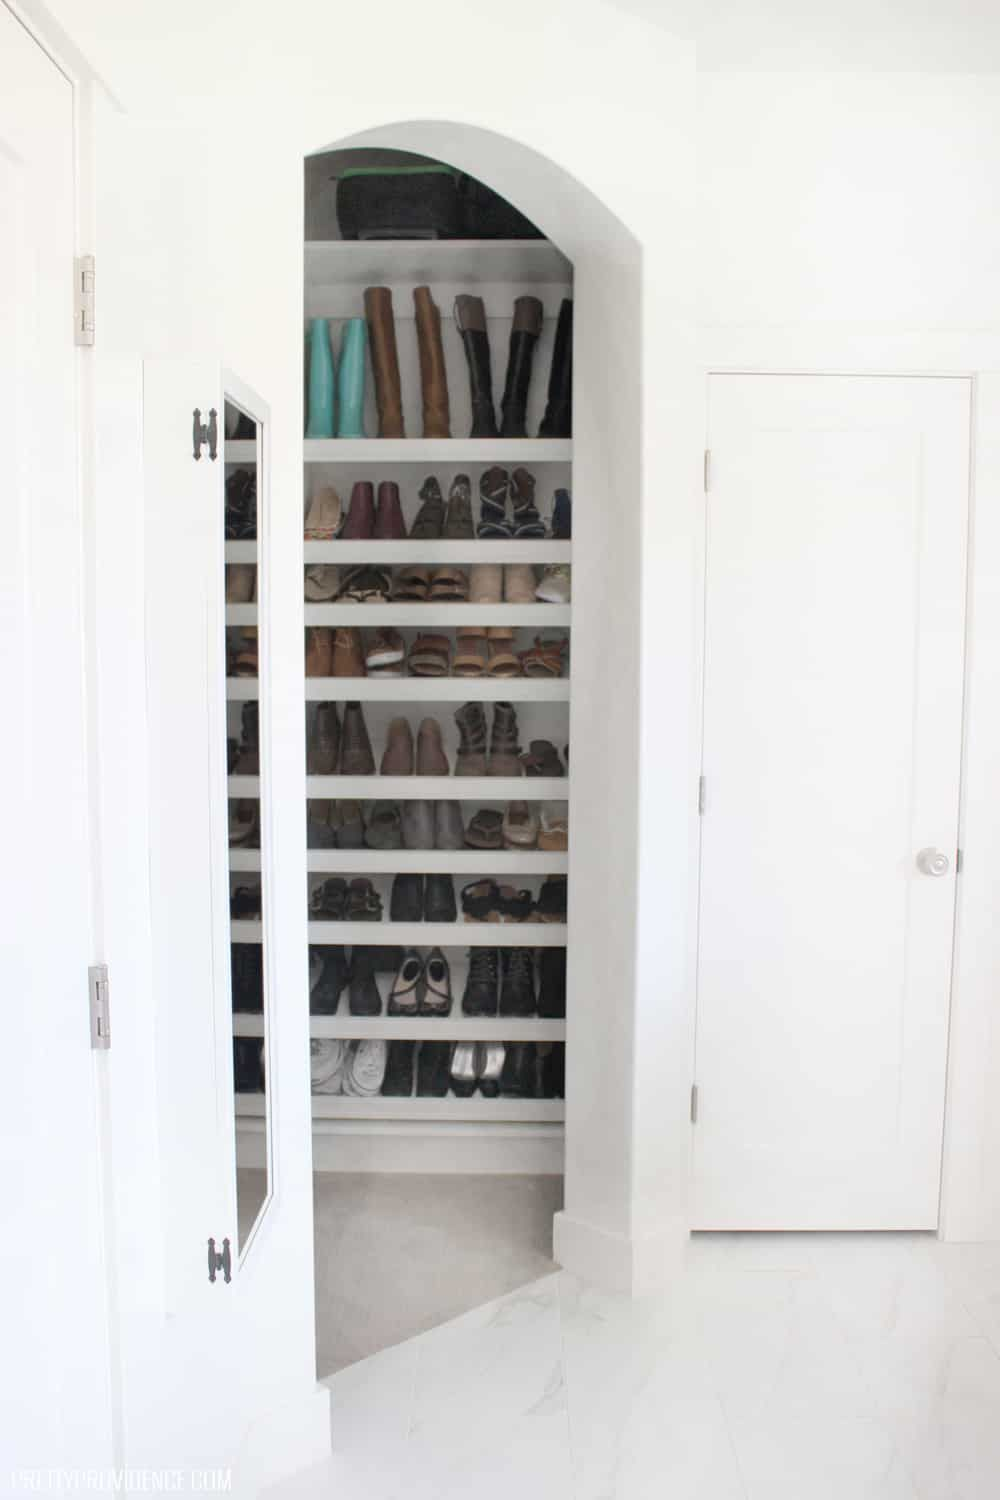 Ideas Of Functional And Practical Walk In Closet For Home: Walk In Closet Ideas - How To Make Your Closet Work For You!